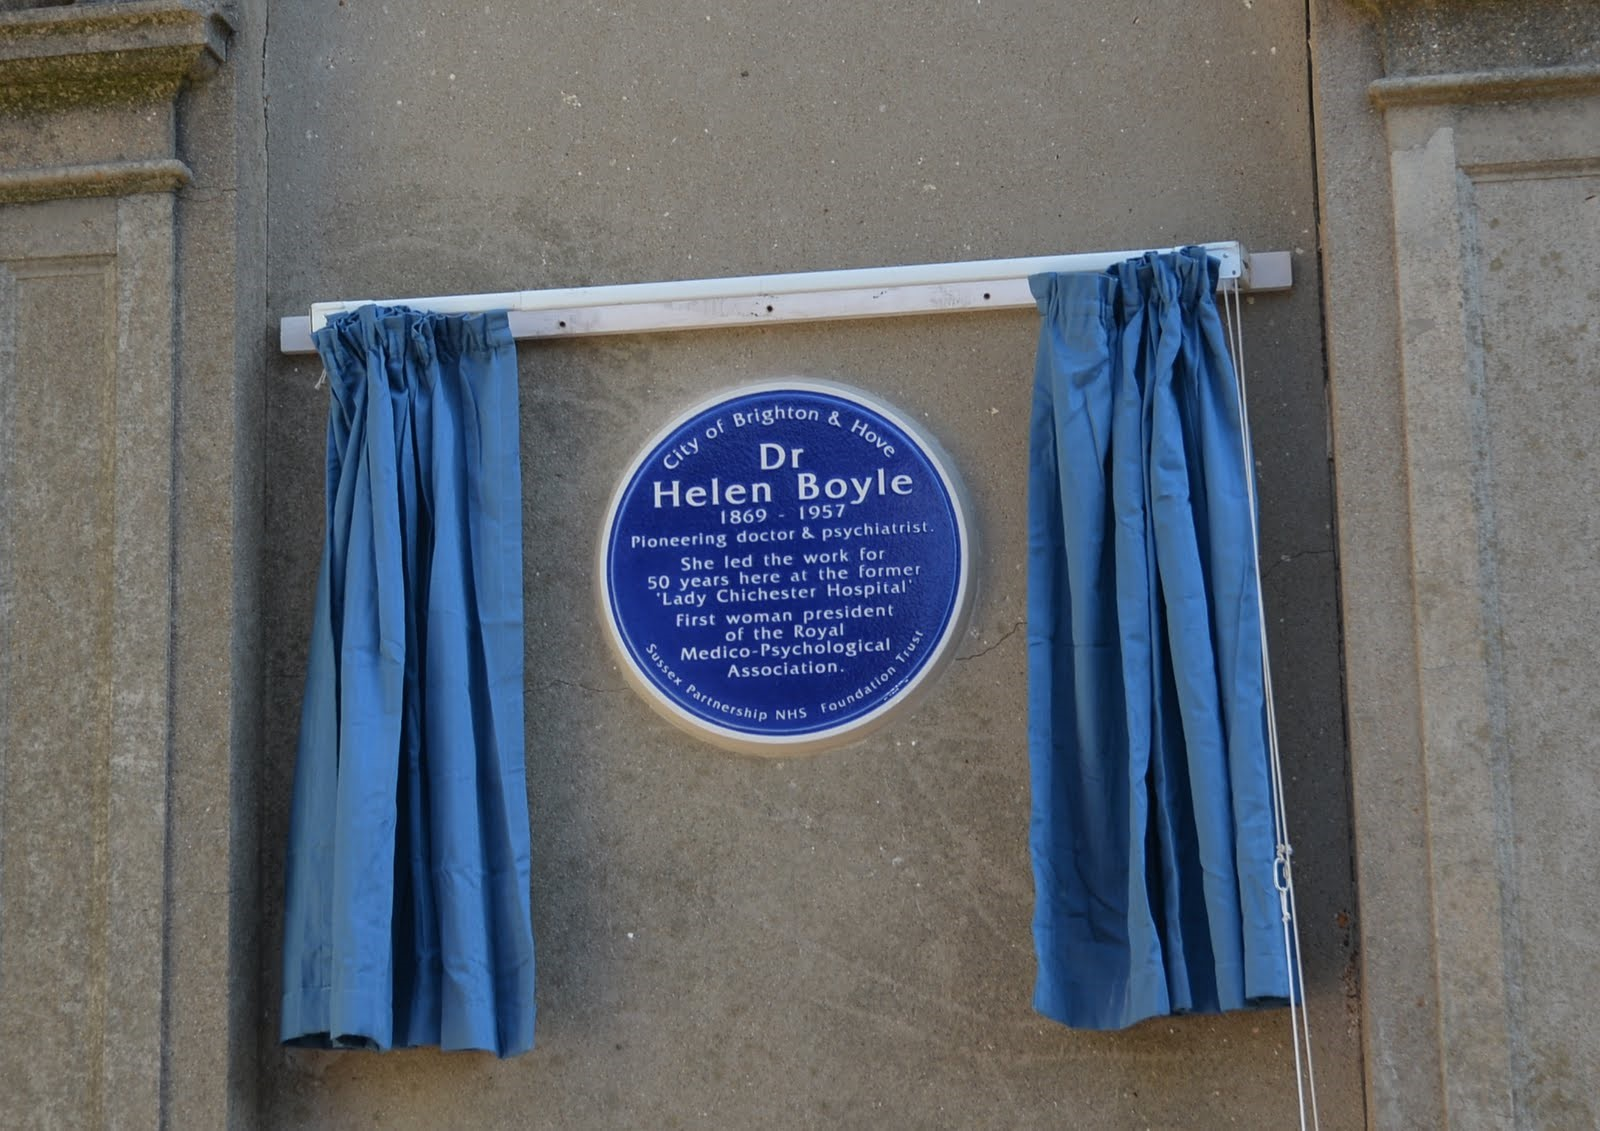 The Mayor of Brighton unveiled the plaque dedicated to Dr Helen Boyle  at Sussex Partnership NHS Foundation Trust's Aldrington House on New Church Road, Hove.  Members of the Boyle family were present at the ceremony together with the Ambassador of Serbia, Dr Ognjen Pribićević.